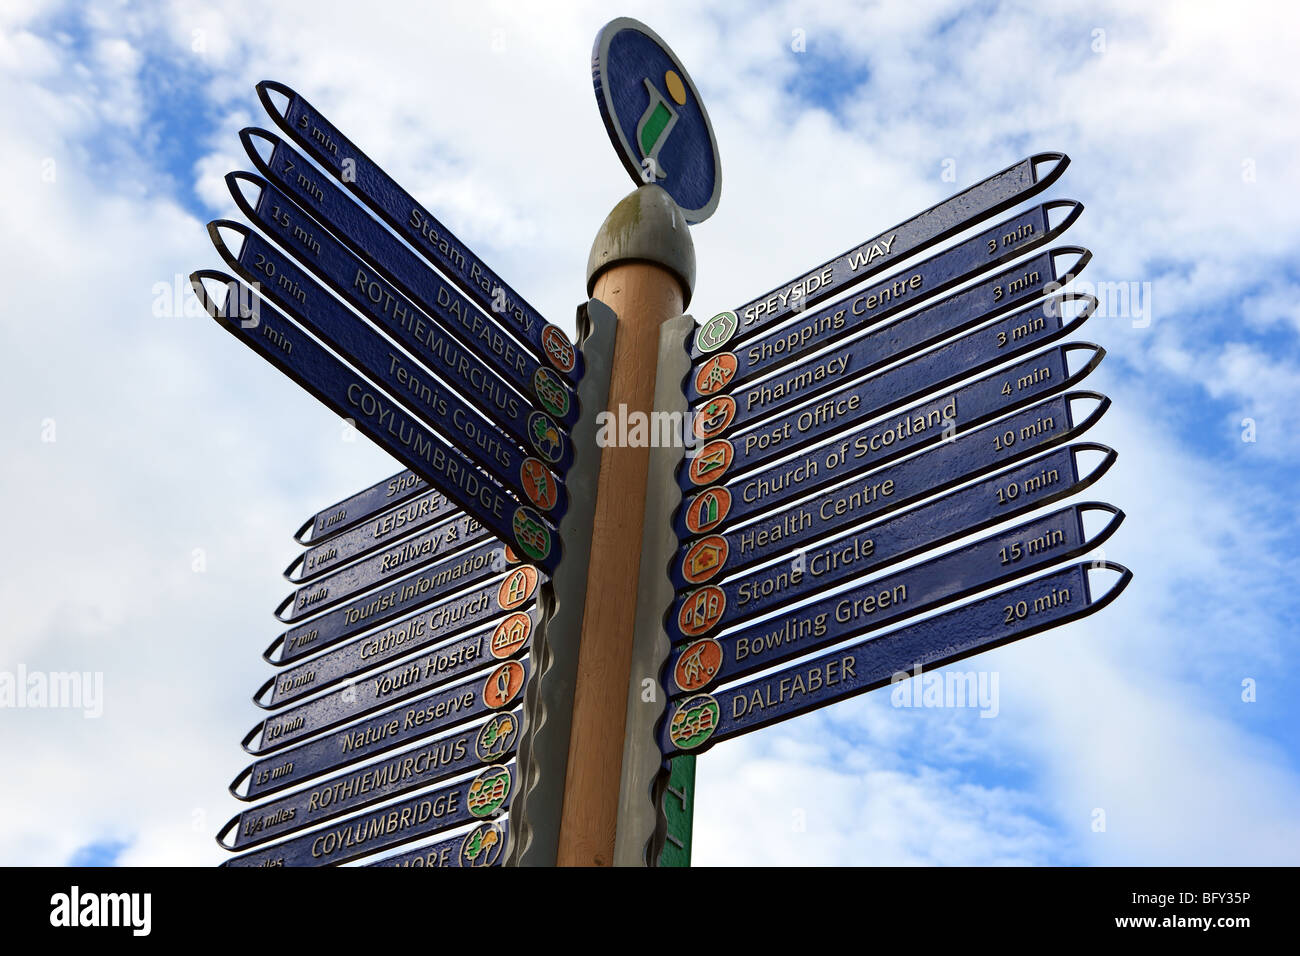 Aviemore tourism way marker sign - Stock Image